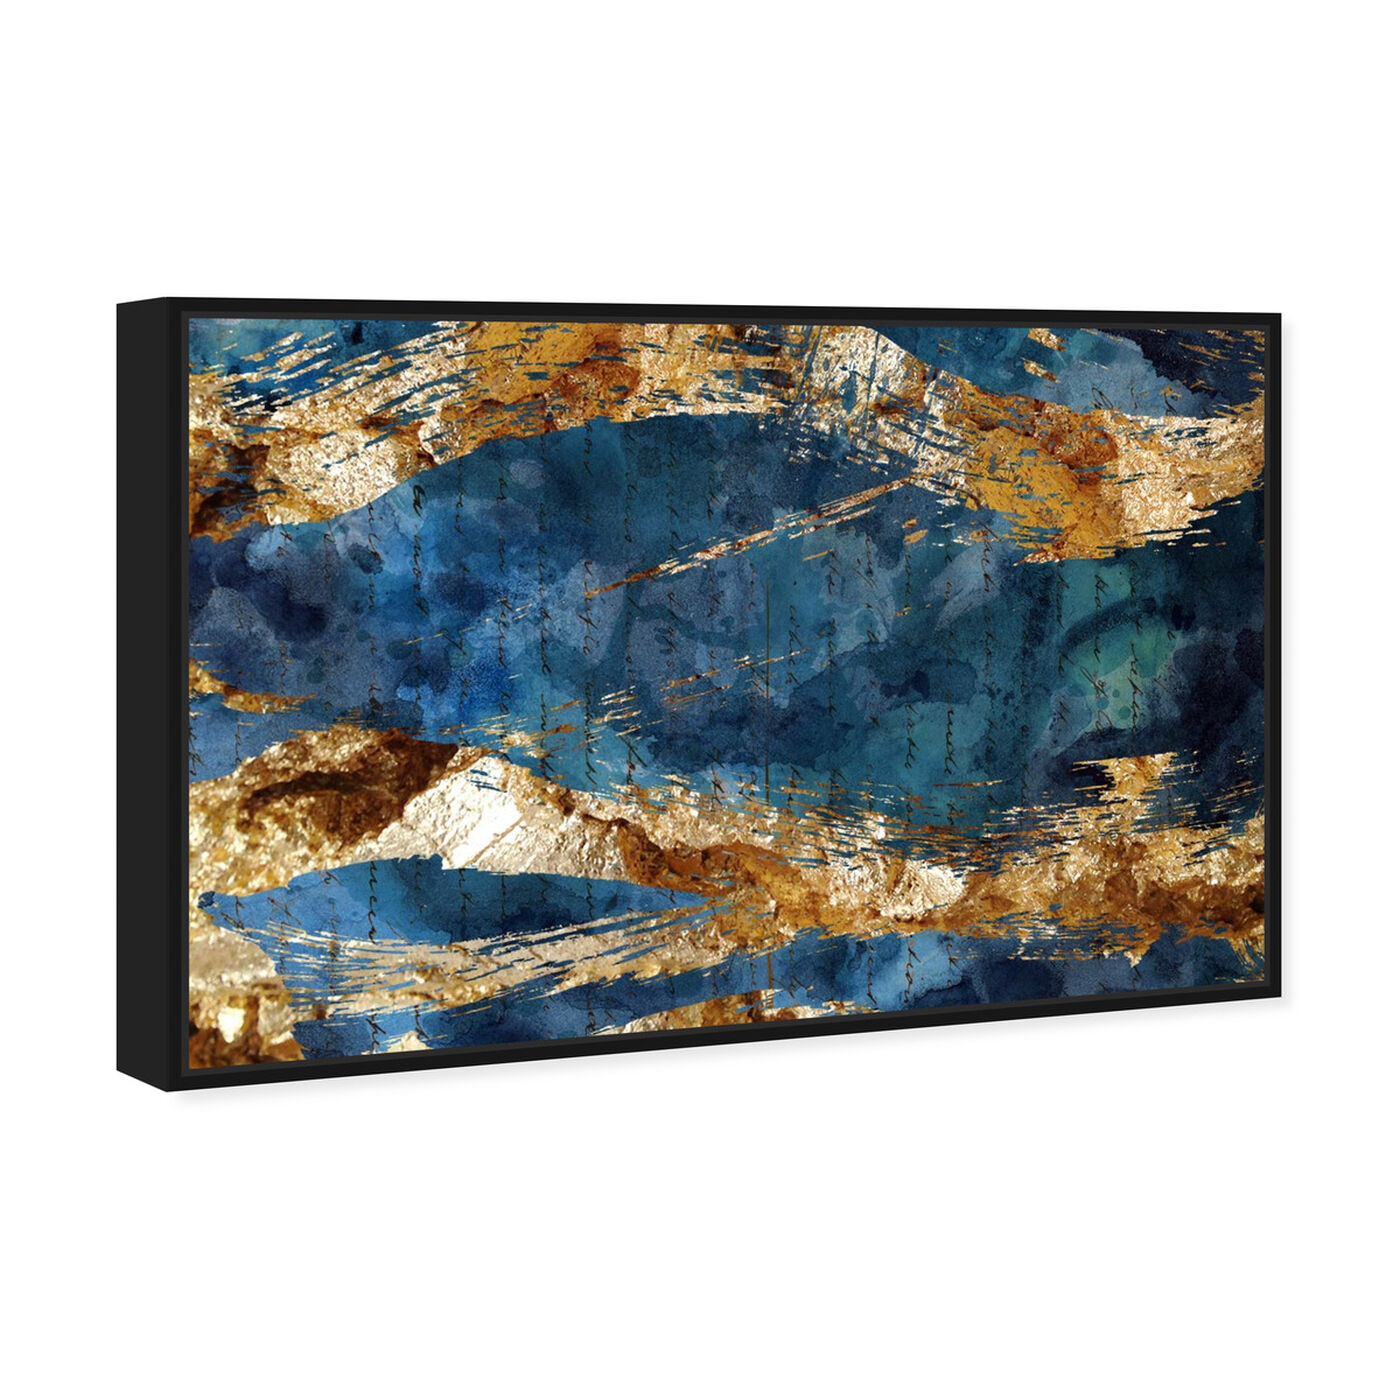 Angled view of Marea Alta - Signature Collection featuring abstract and watercolor art.